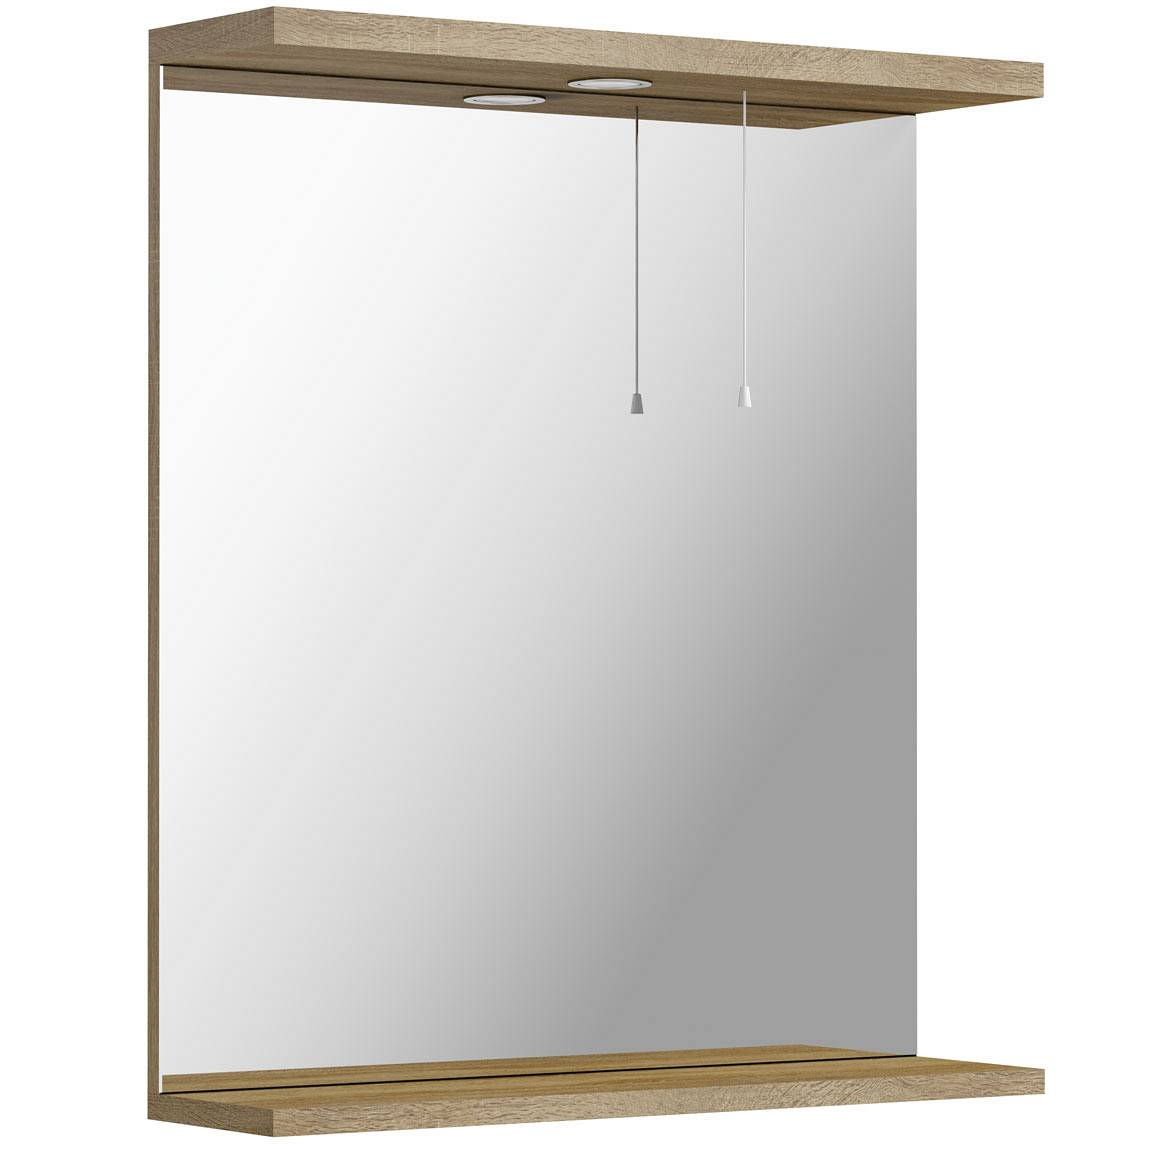 Image of Sienna Oak 65 Mirror with lights